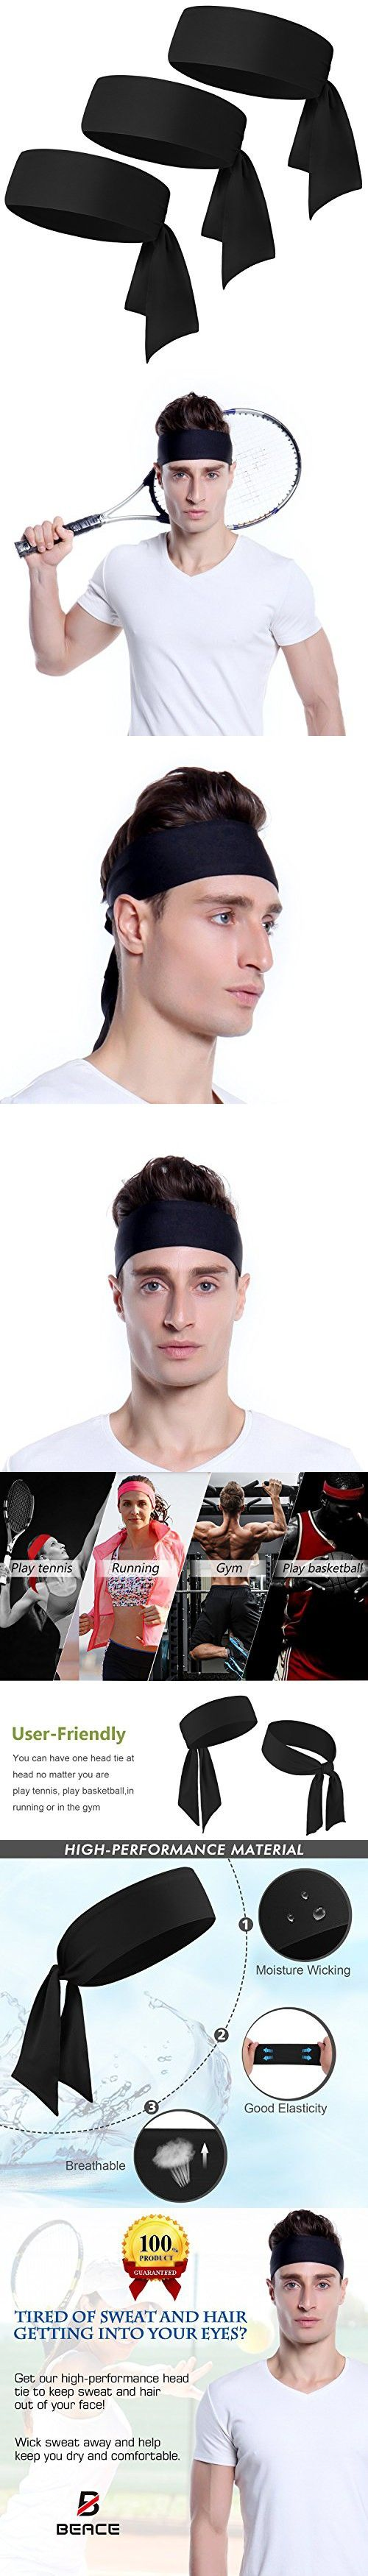 Head Tie Headband for Men & Women - 1PCS / 2PCS / 3PCS - Keep Sweat Out of Your Face - Moisture Wicking & Performance Stretch - Sports Headband for Tennis Running Gym and Working Out